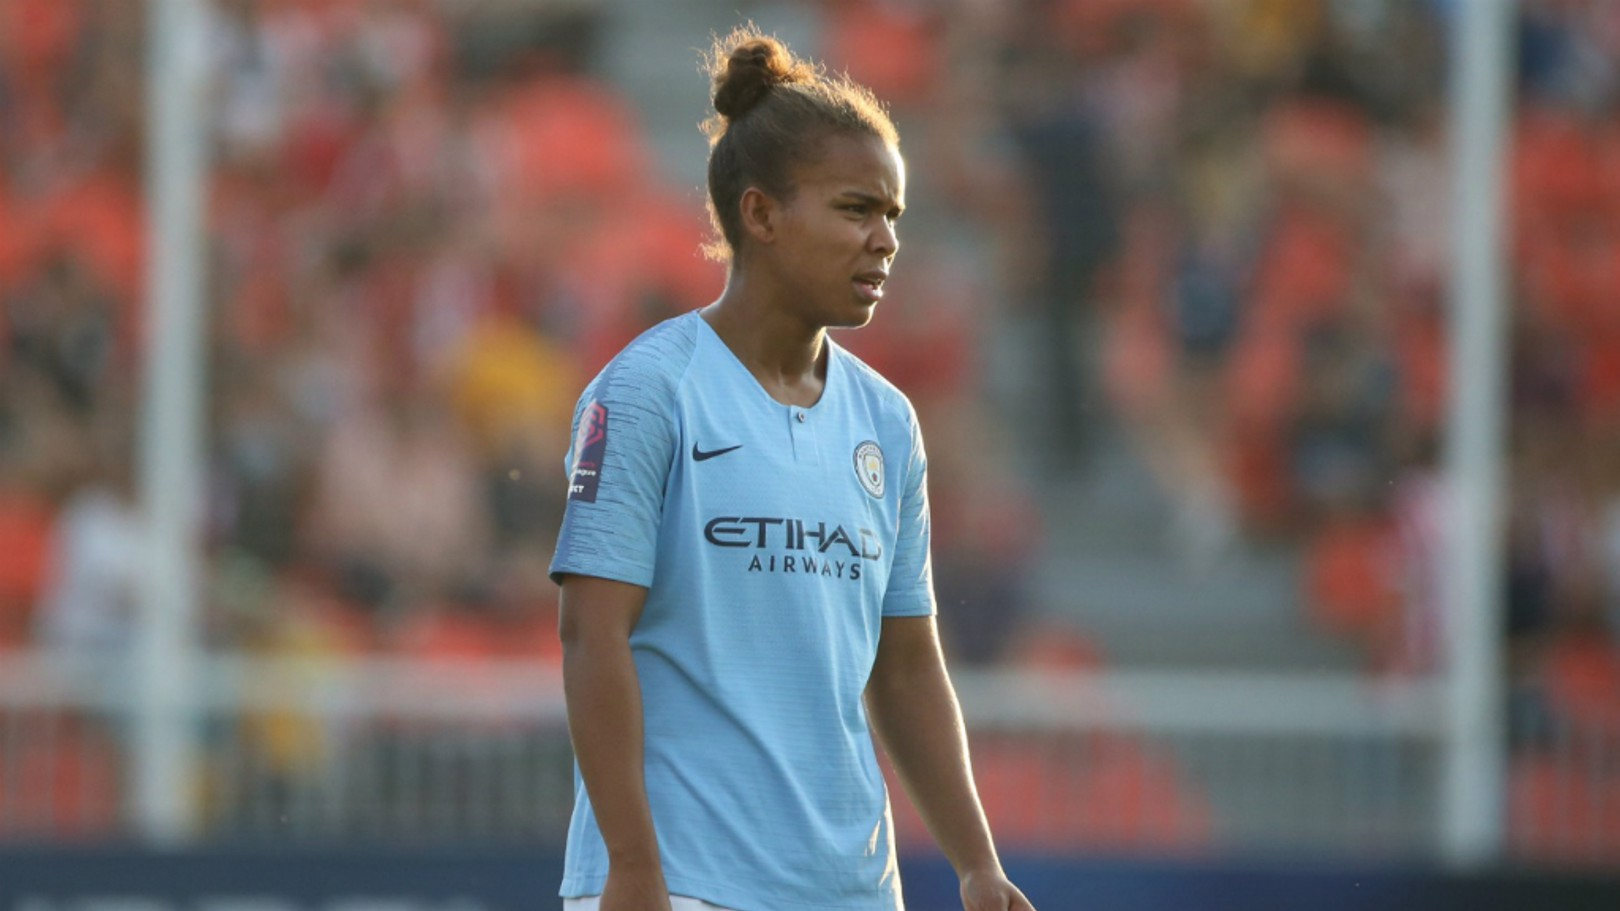 CENTURION: Nikita Parris made her 100th appearance for the Club against Atletico Madrid